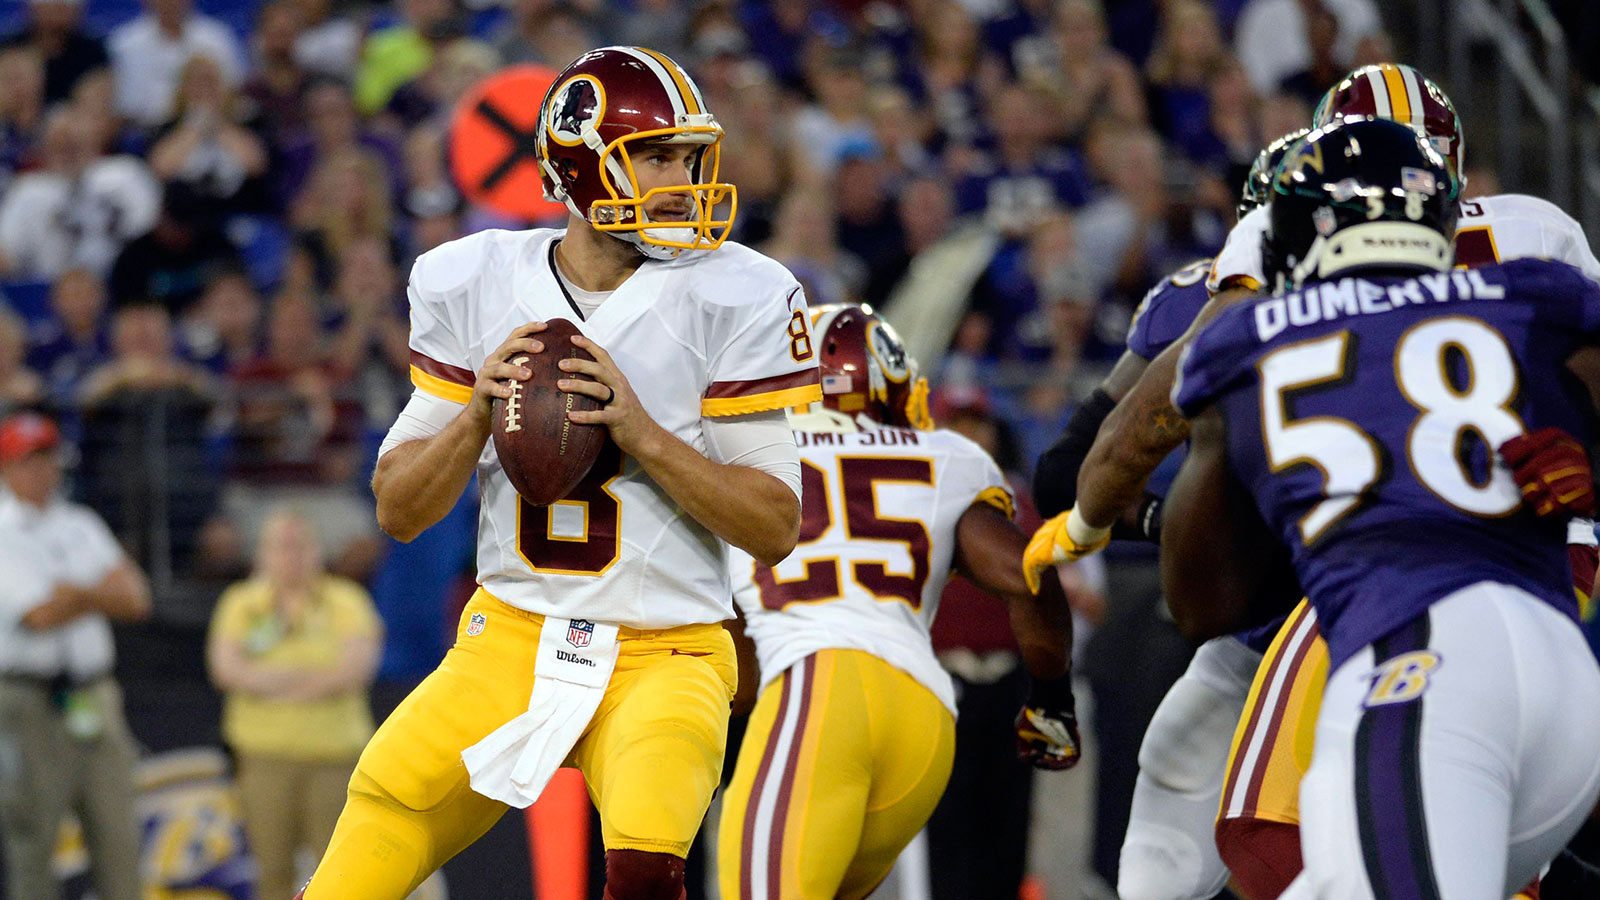 Five things we learned about the Redskins this preseason